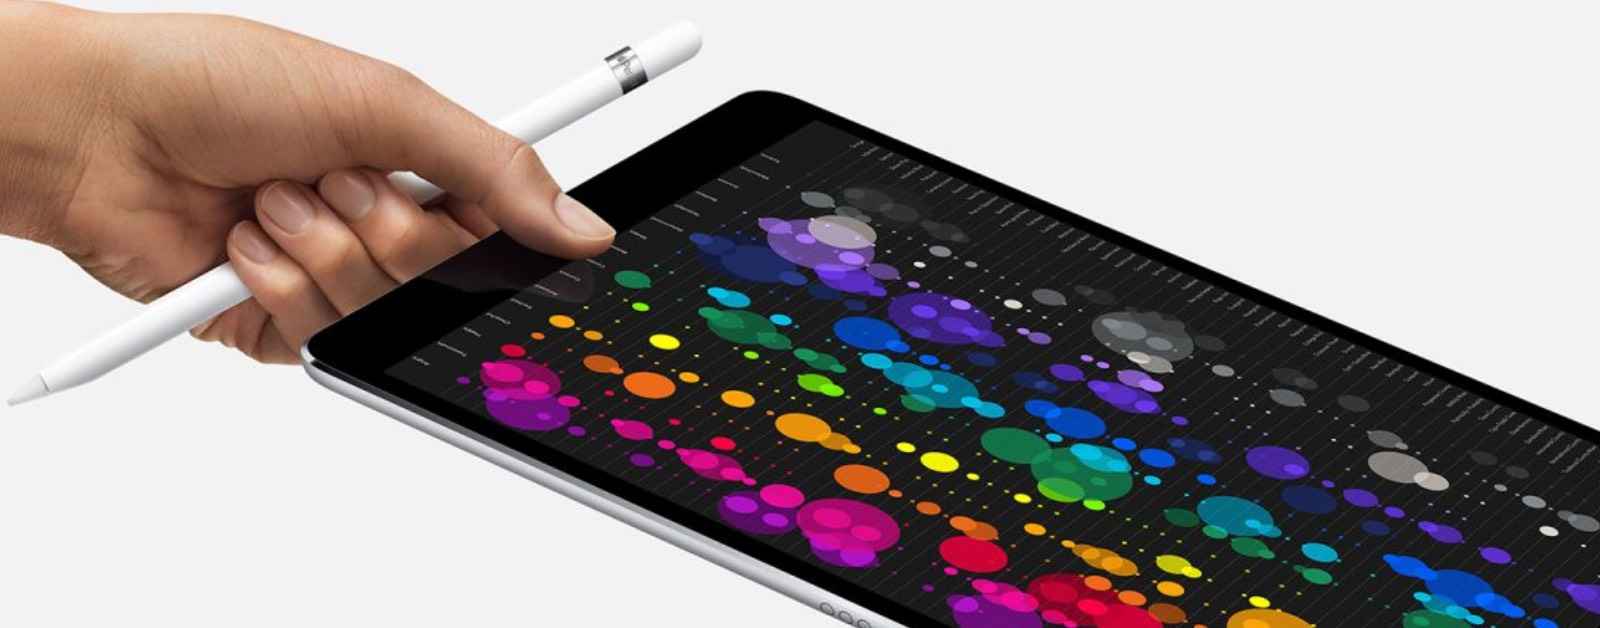 Breaking: Adobe is Building a Full Version of iPad Photoshop